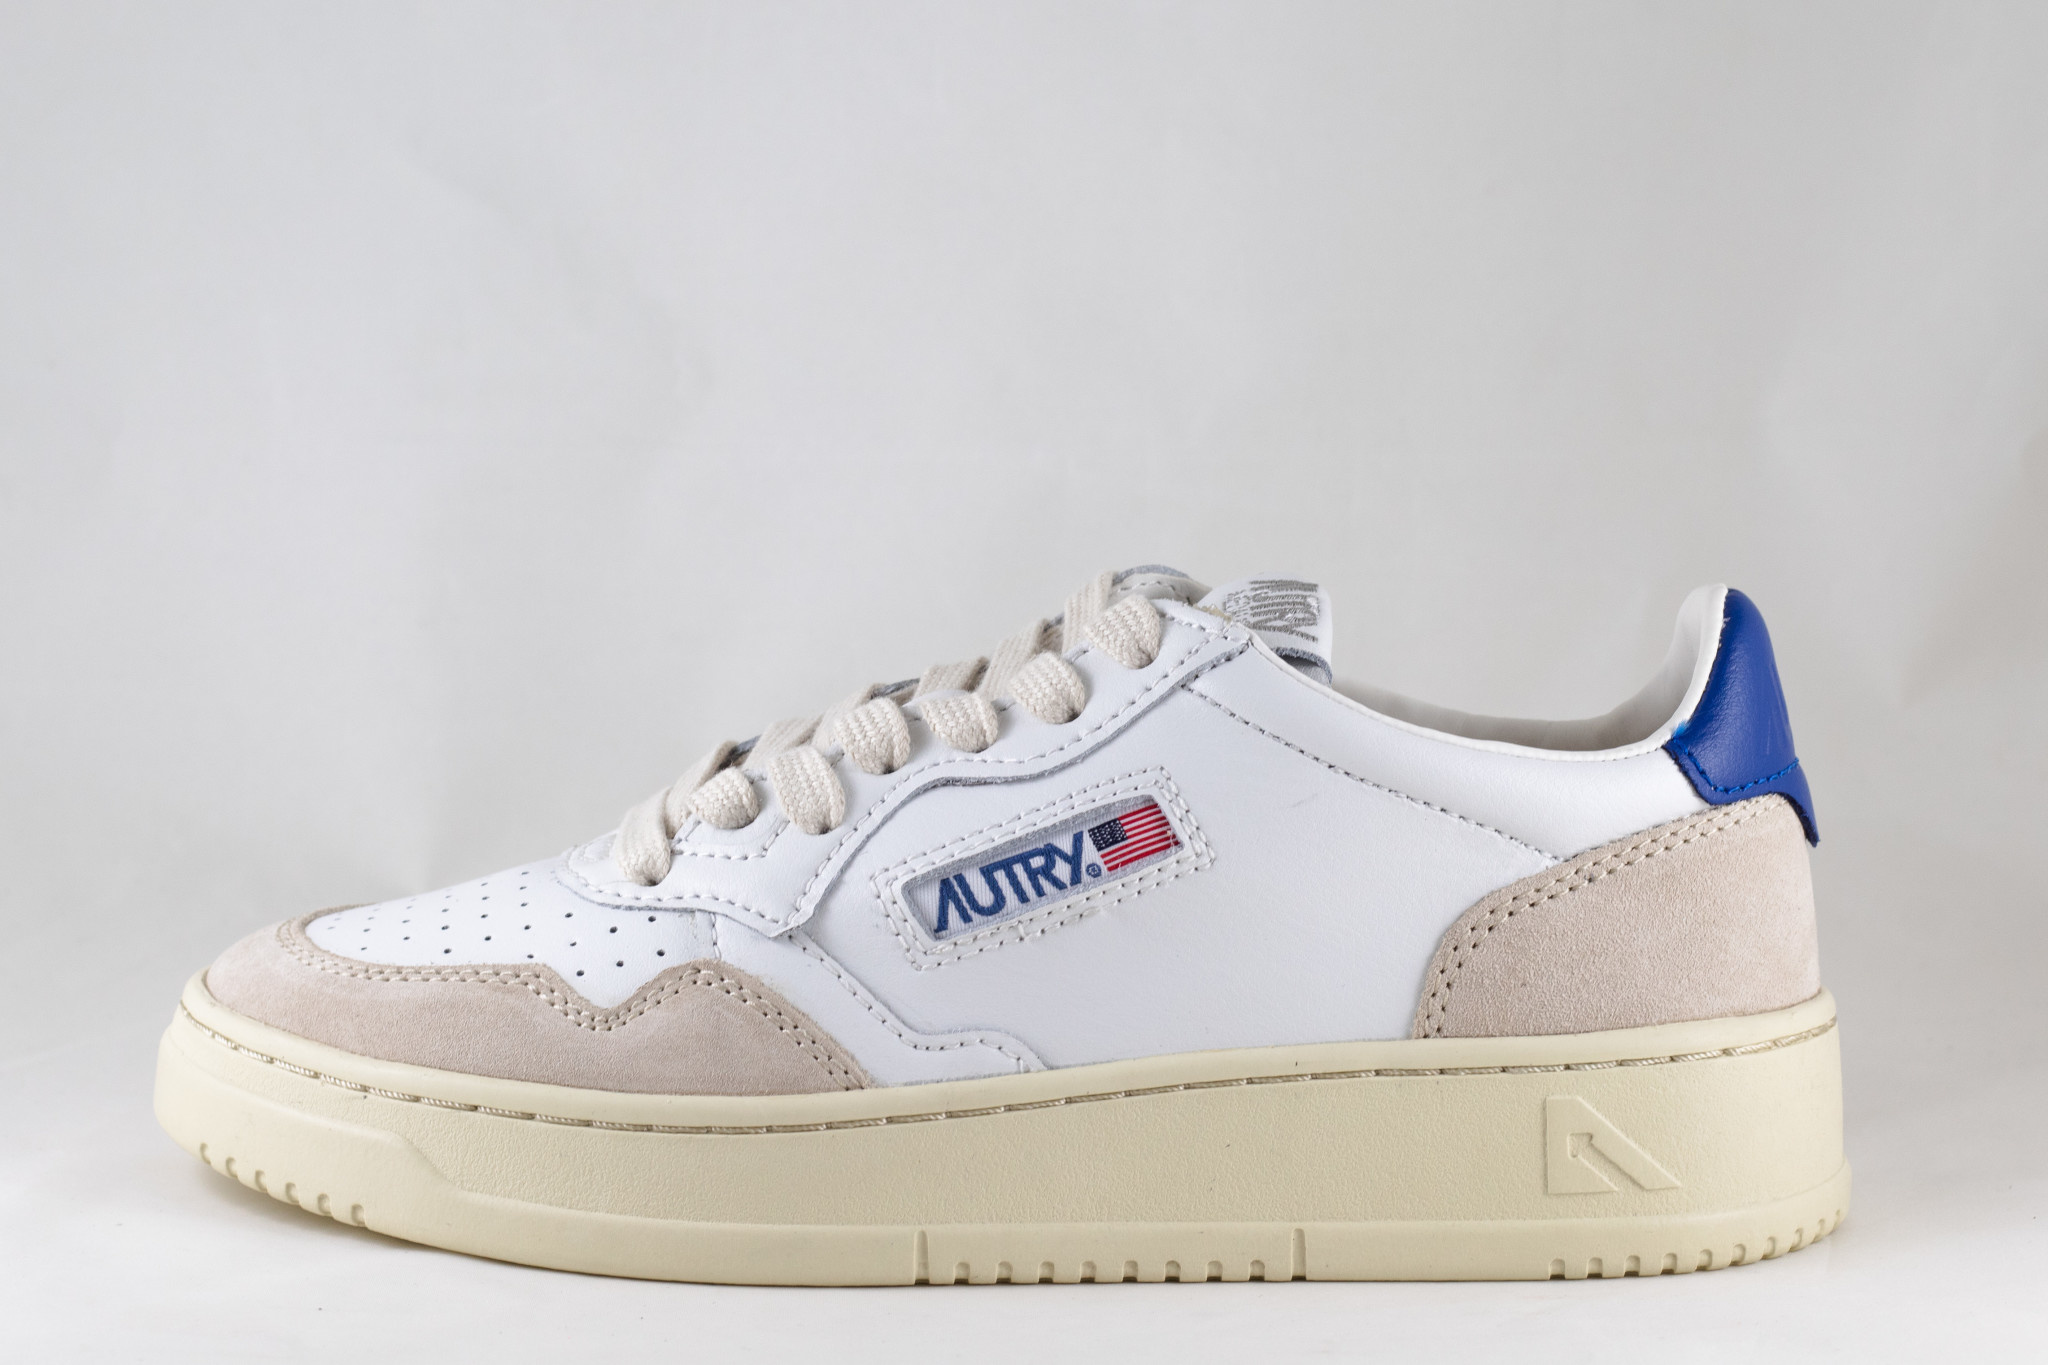 AUTRY  LS34 LOW MAN LEATHER/SUEDE White/ Navy